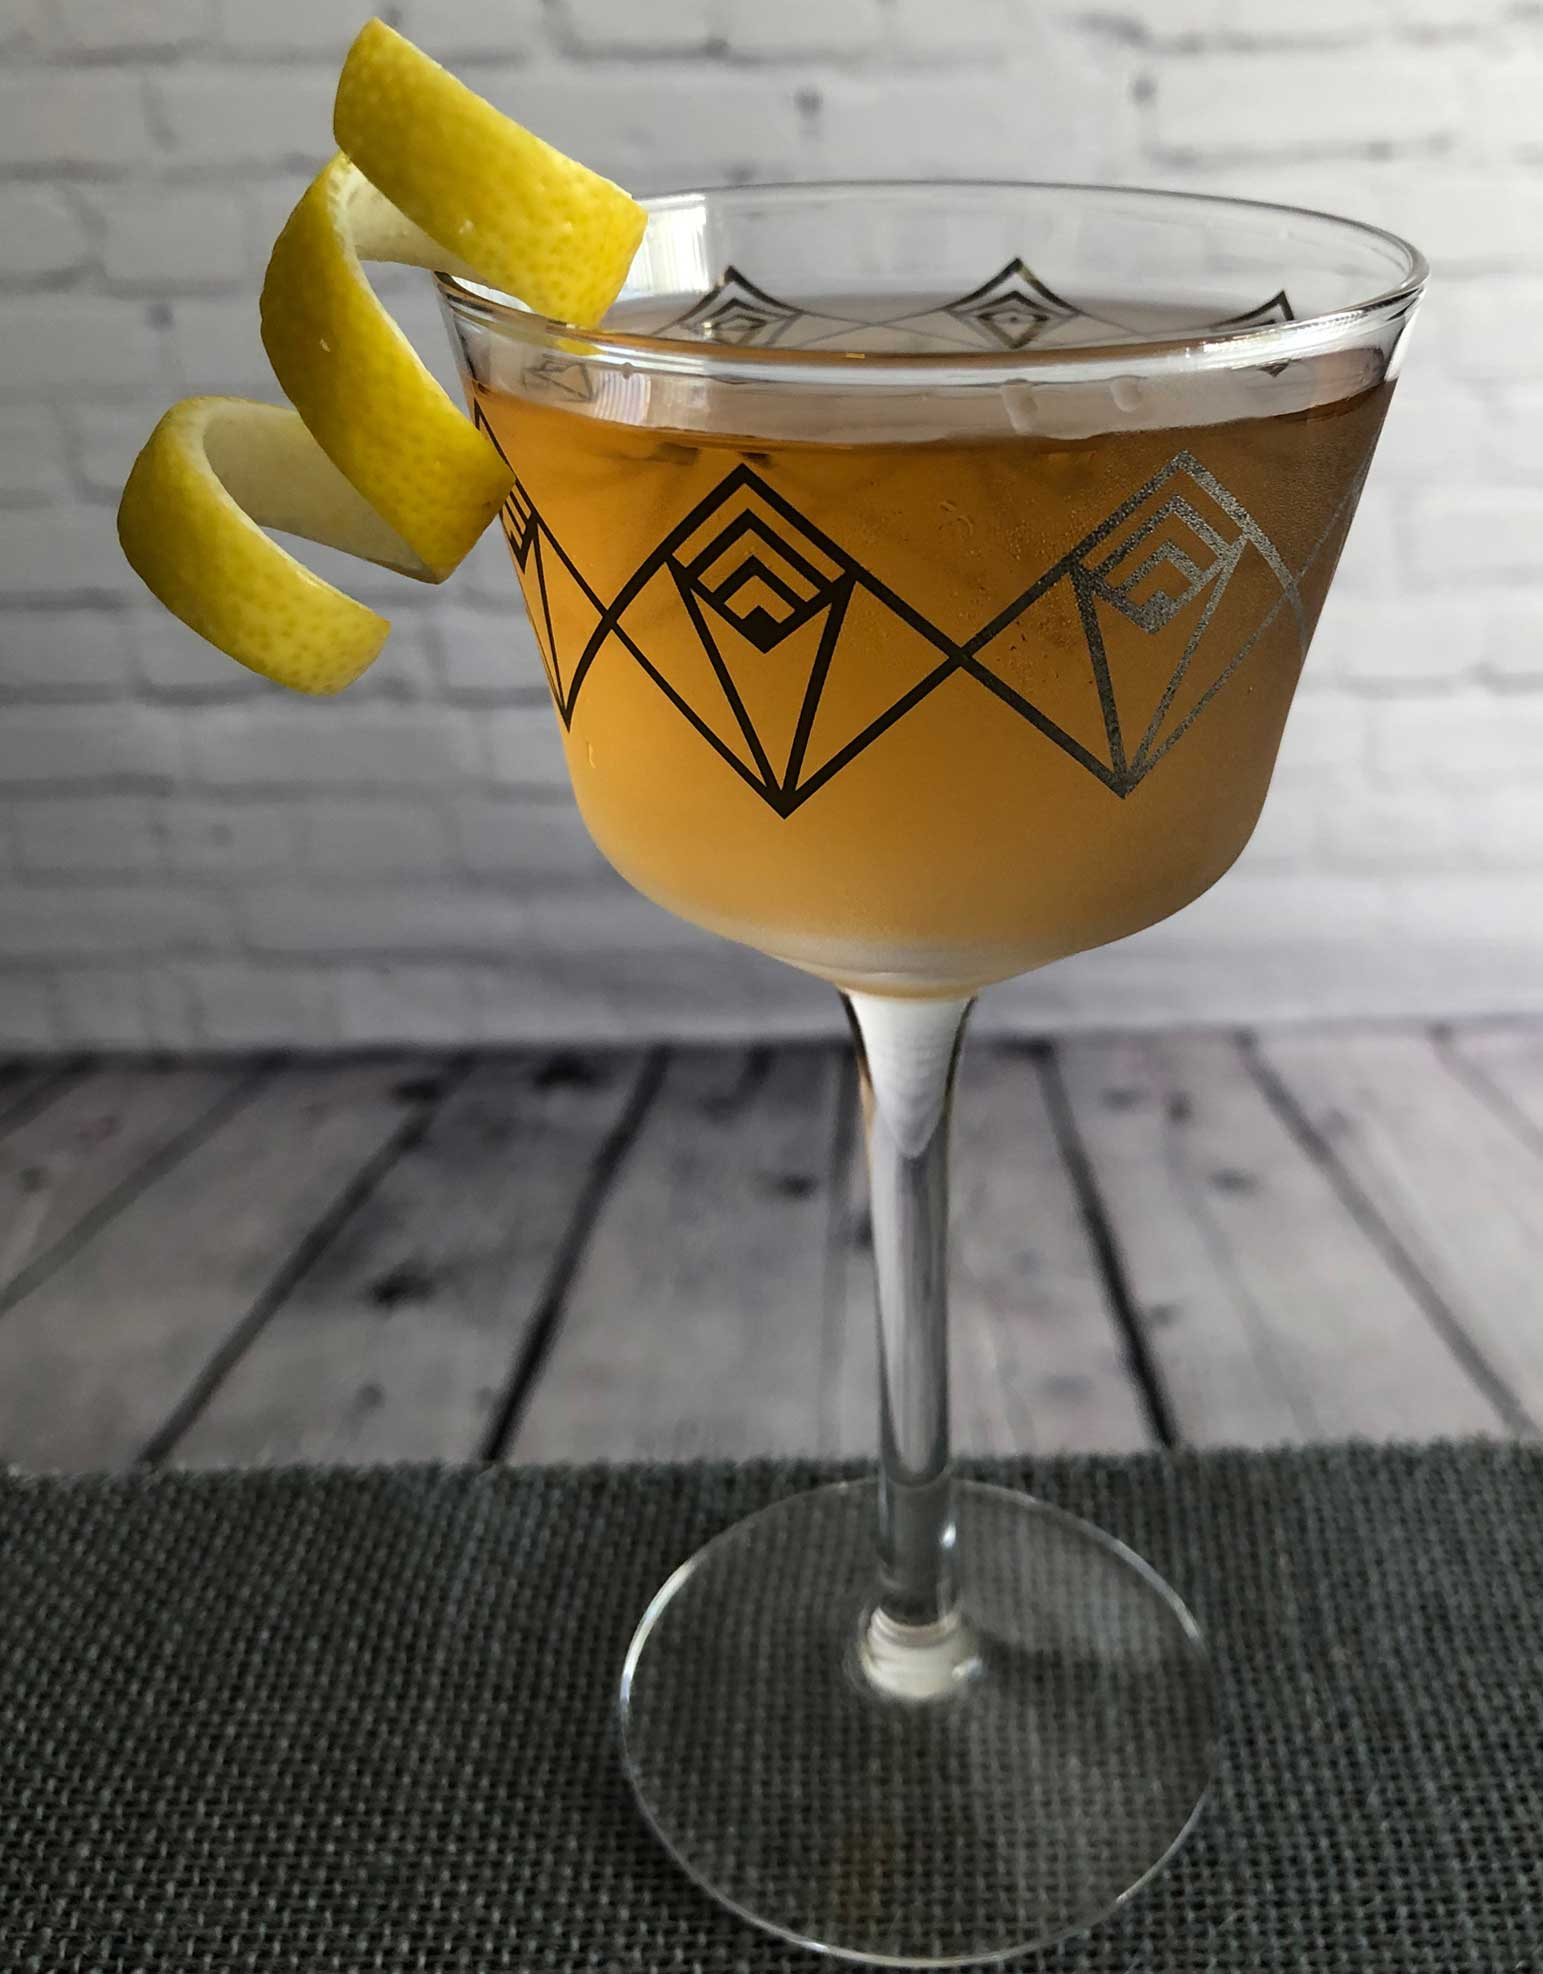 An example of the Prince Henry's Reed, the mixed drink (cocktail) featuring Henriques & Henriques Rainwater Madeira, Dolin Dry Vermouth de Chambéry, and orange bitters; photo by Lee Edwards